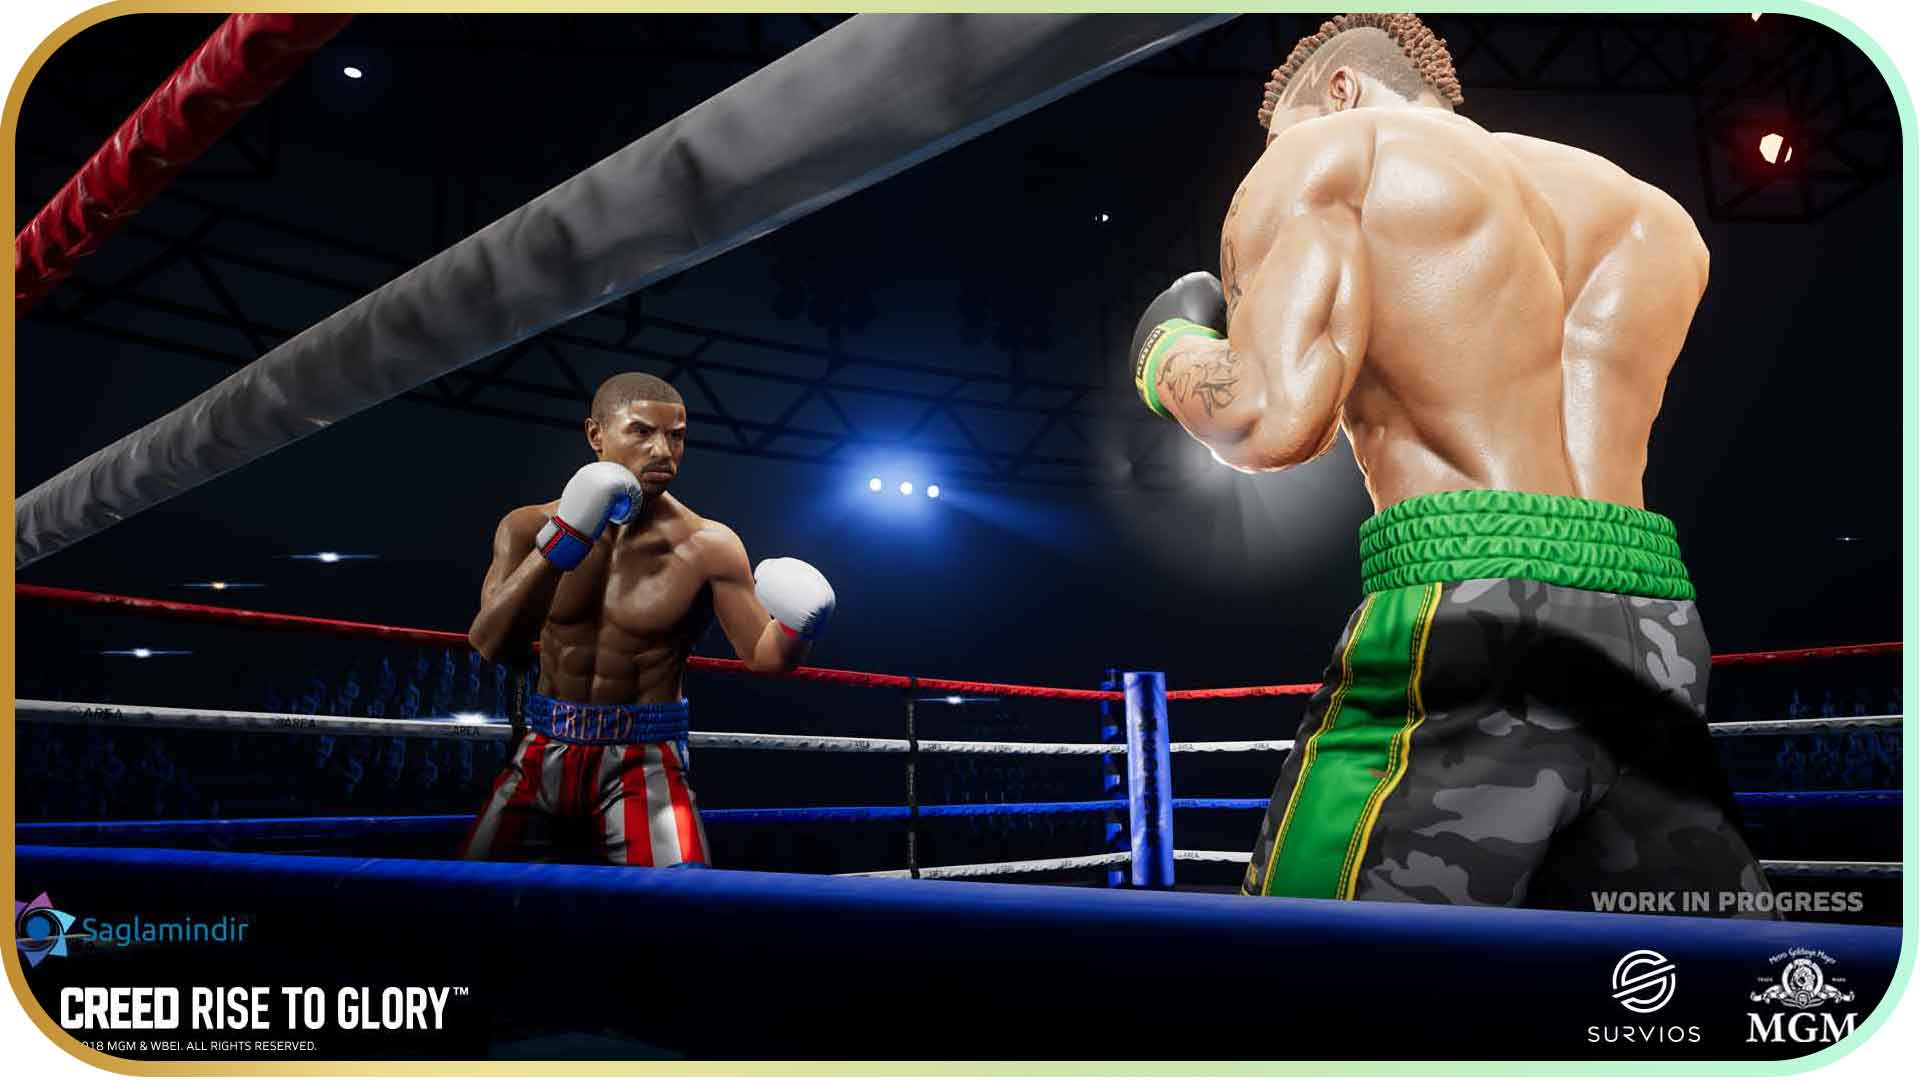 Creed Rise to Glory torrent indir